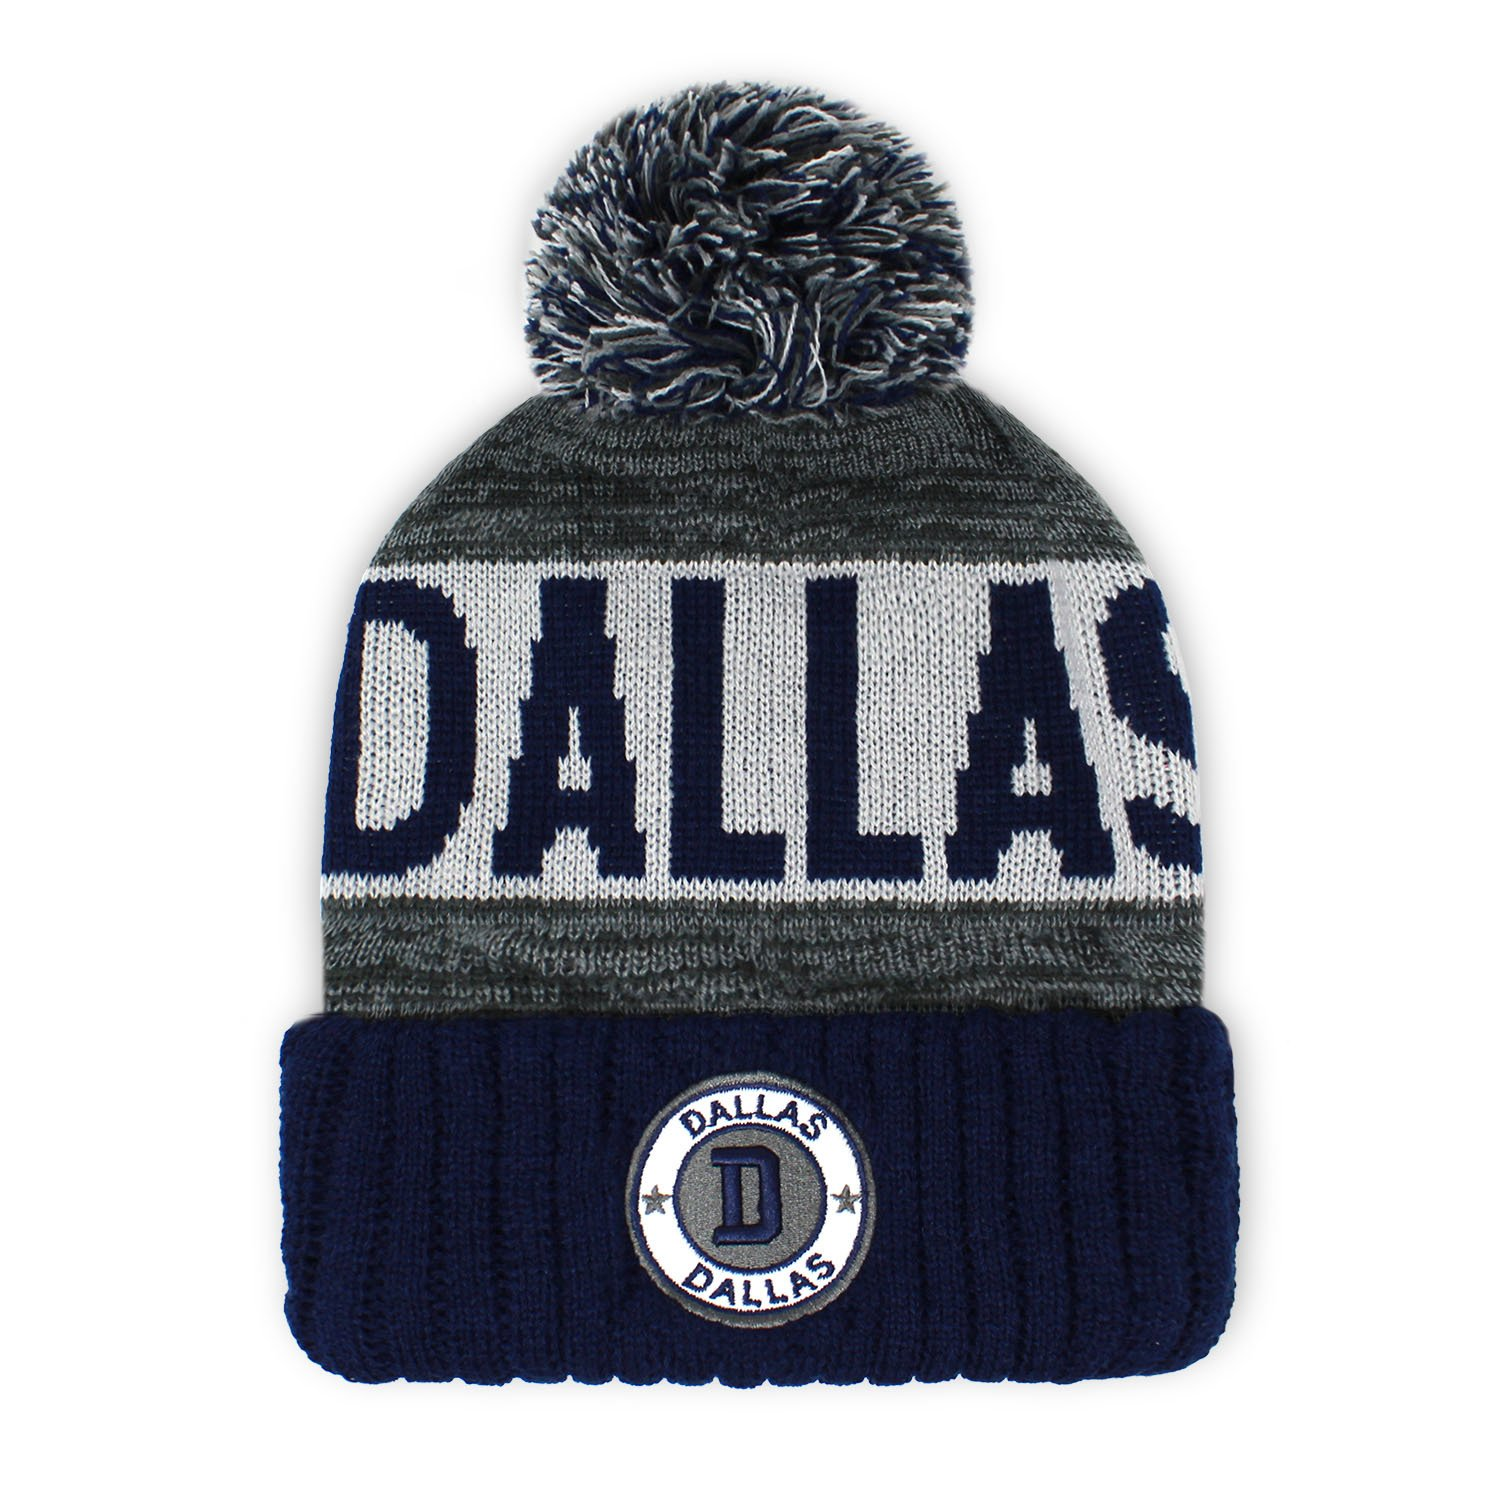 Football City Pom Beanie Premium Embroidered Patch Winter Soft Thick Beanie Skully Hat SP101